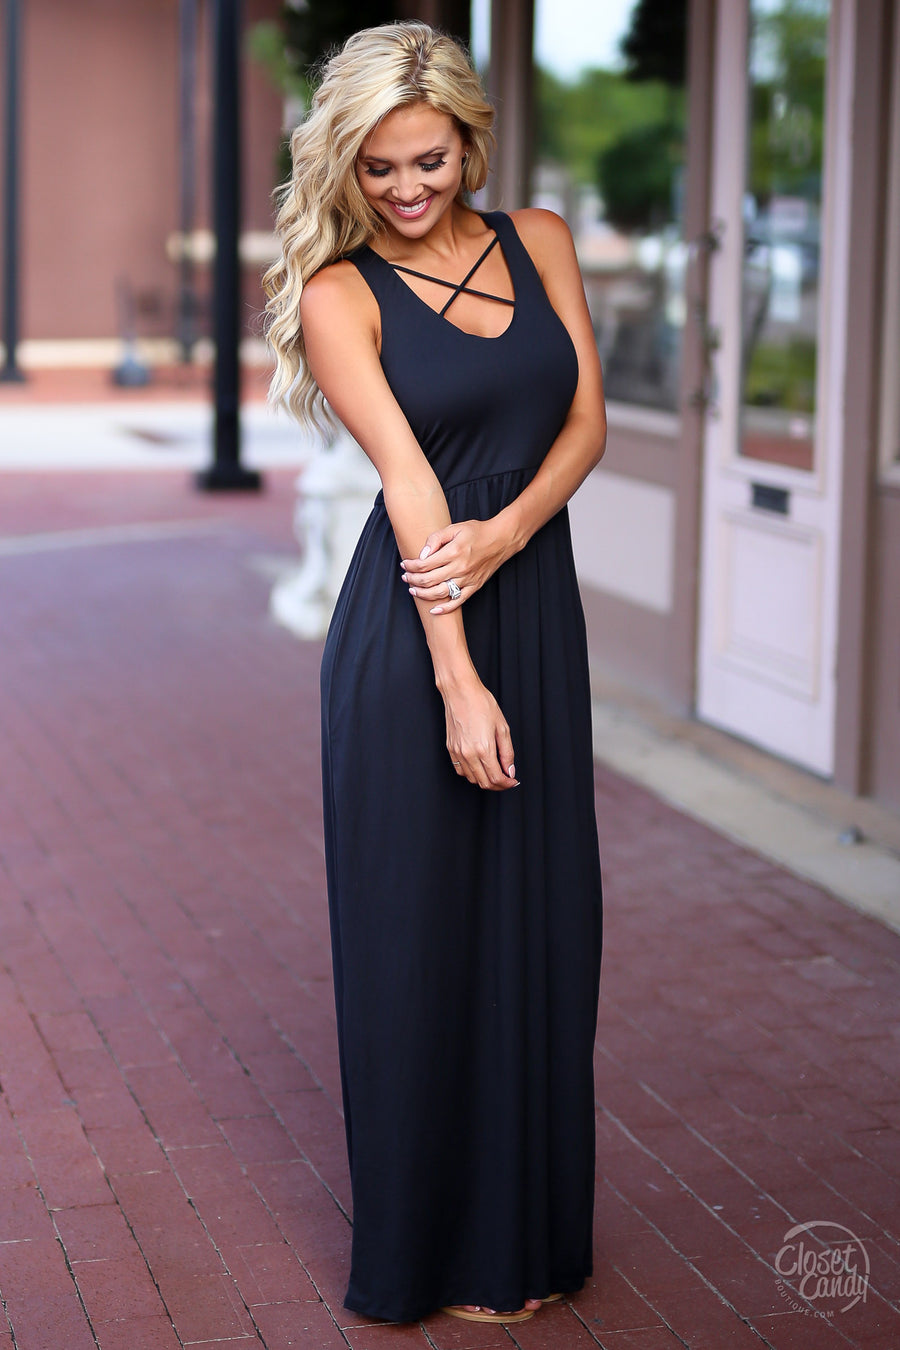 Closet Candy Boutique - cute black maxi dress with trendy criss cross design, front